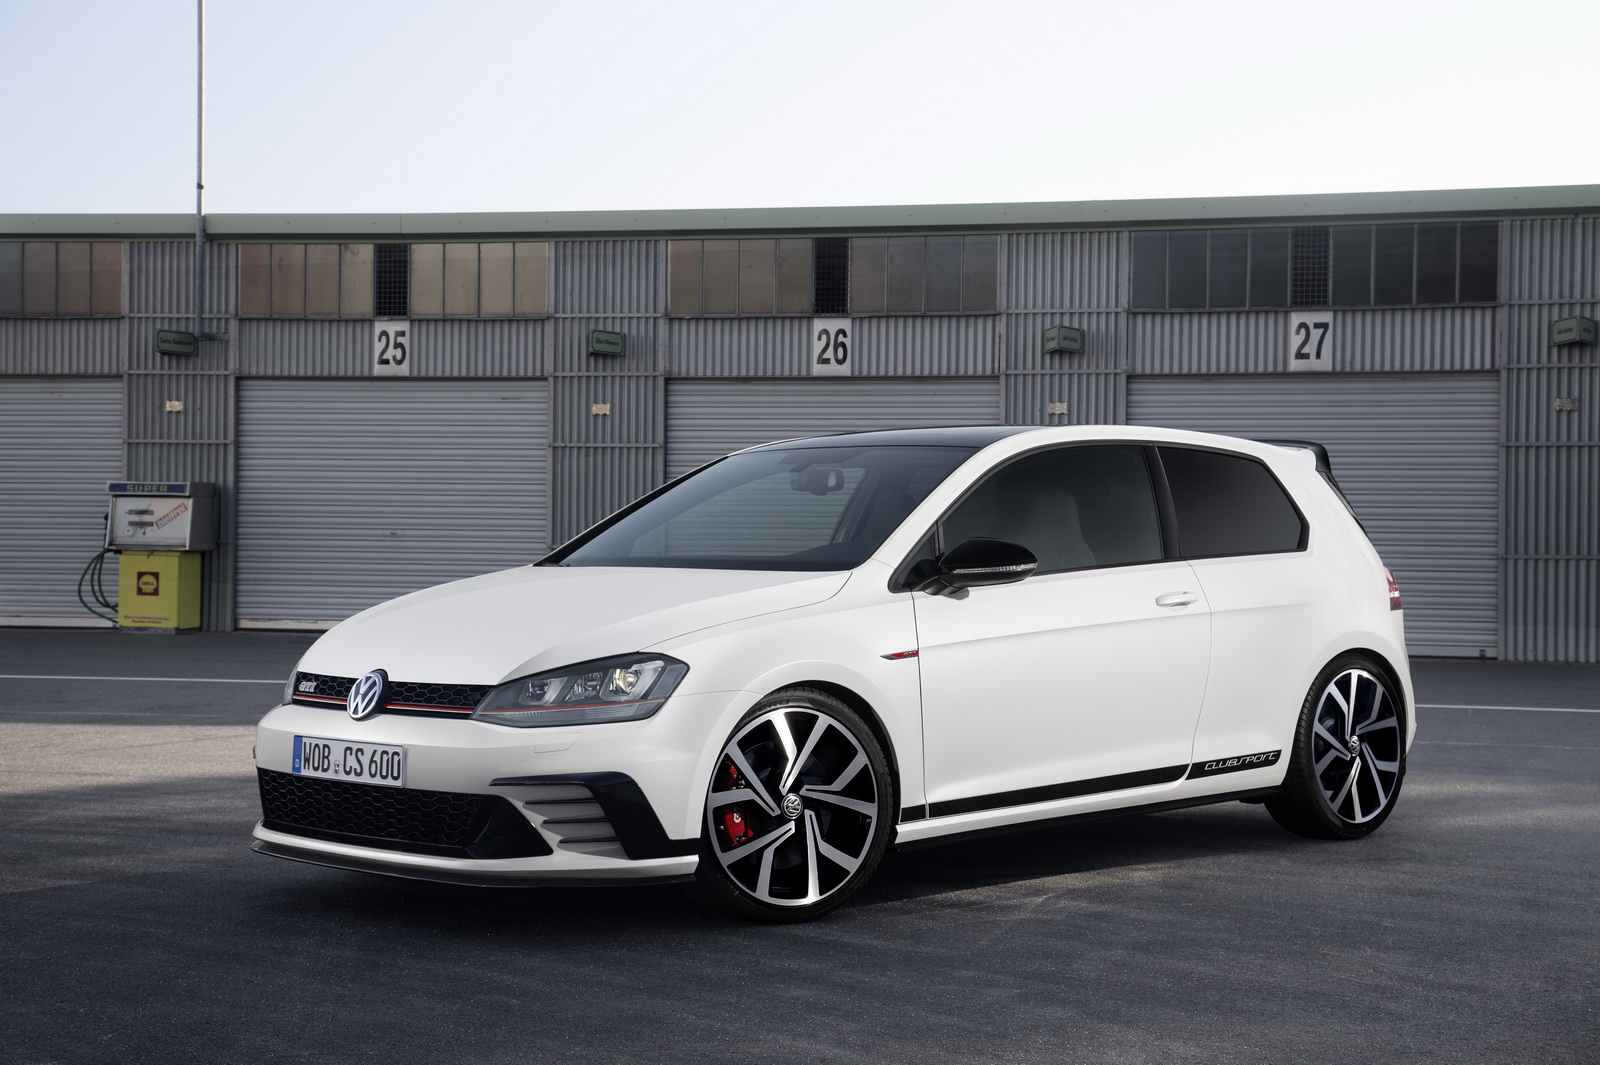 nuova volkswagen golf gti clubsport 2016 revving it blog sul mondo dell 39 auto. Black Bedroom Furniture Sets. Home Design Ideas